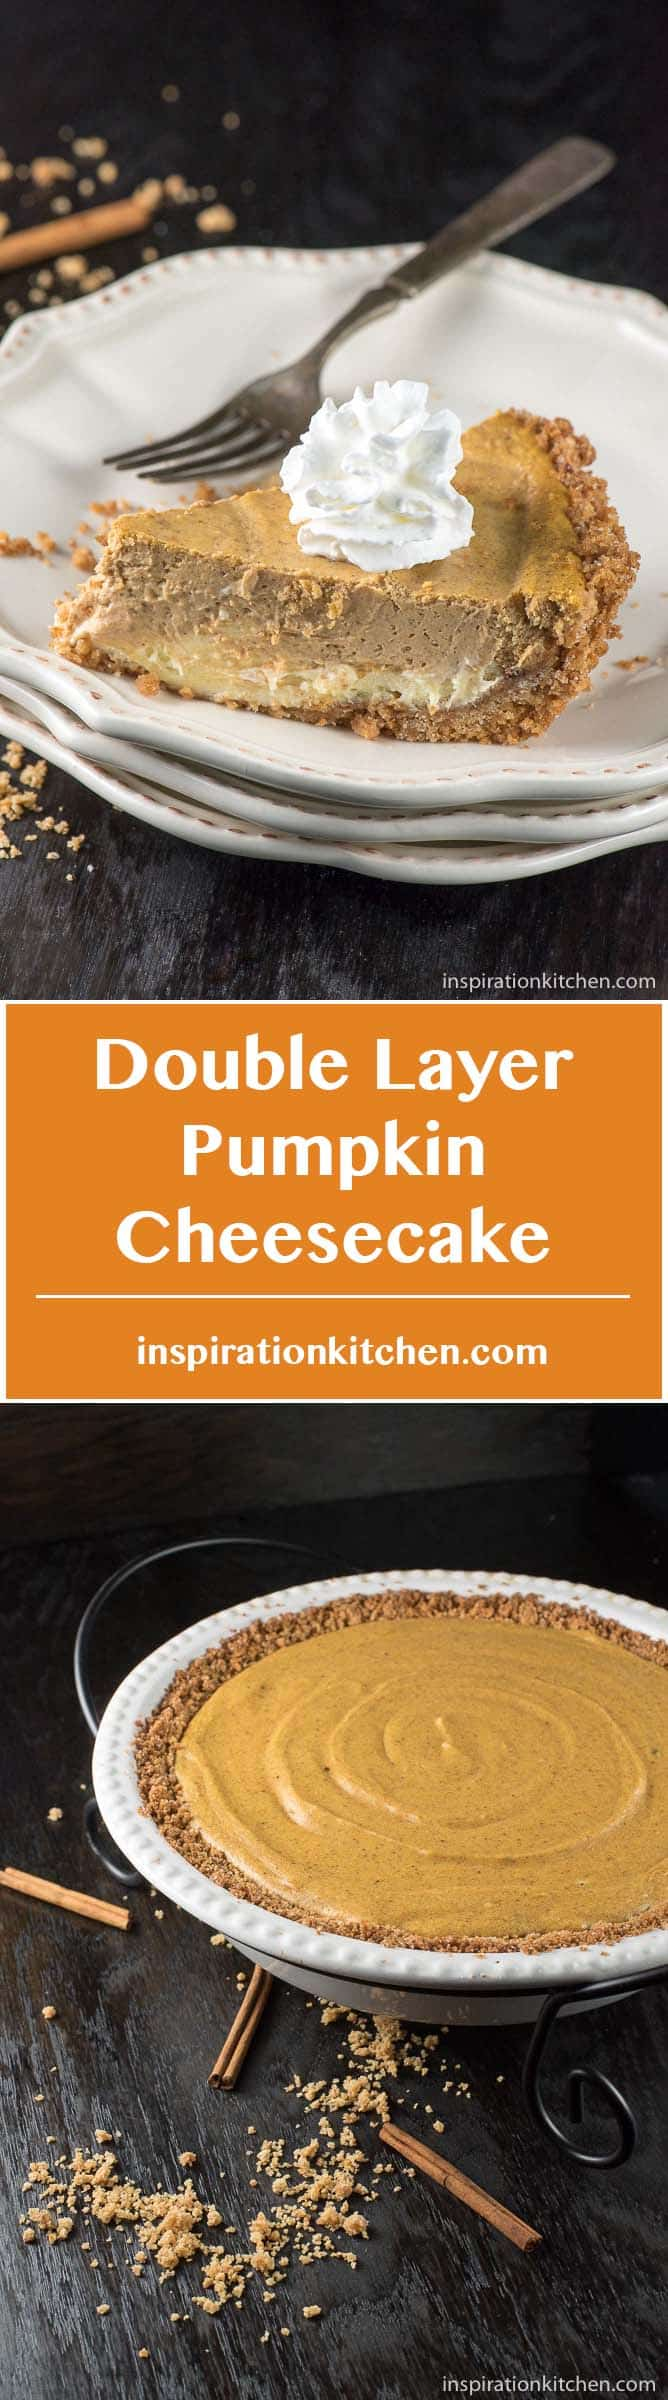 Double Layer Pumpkin Cheesecake - inspirationkitchen.com